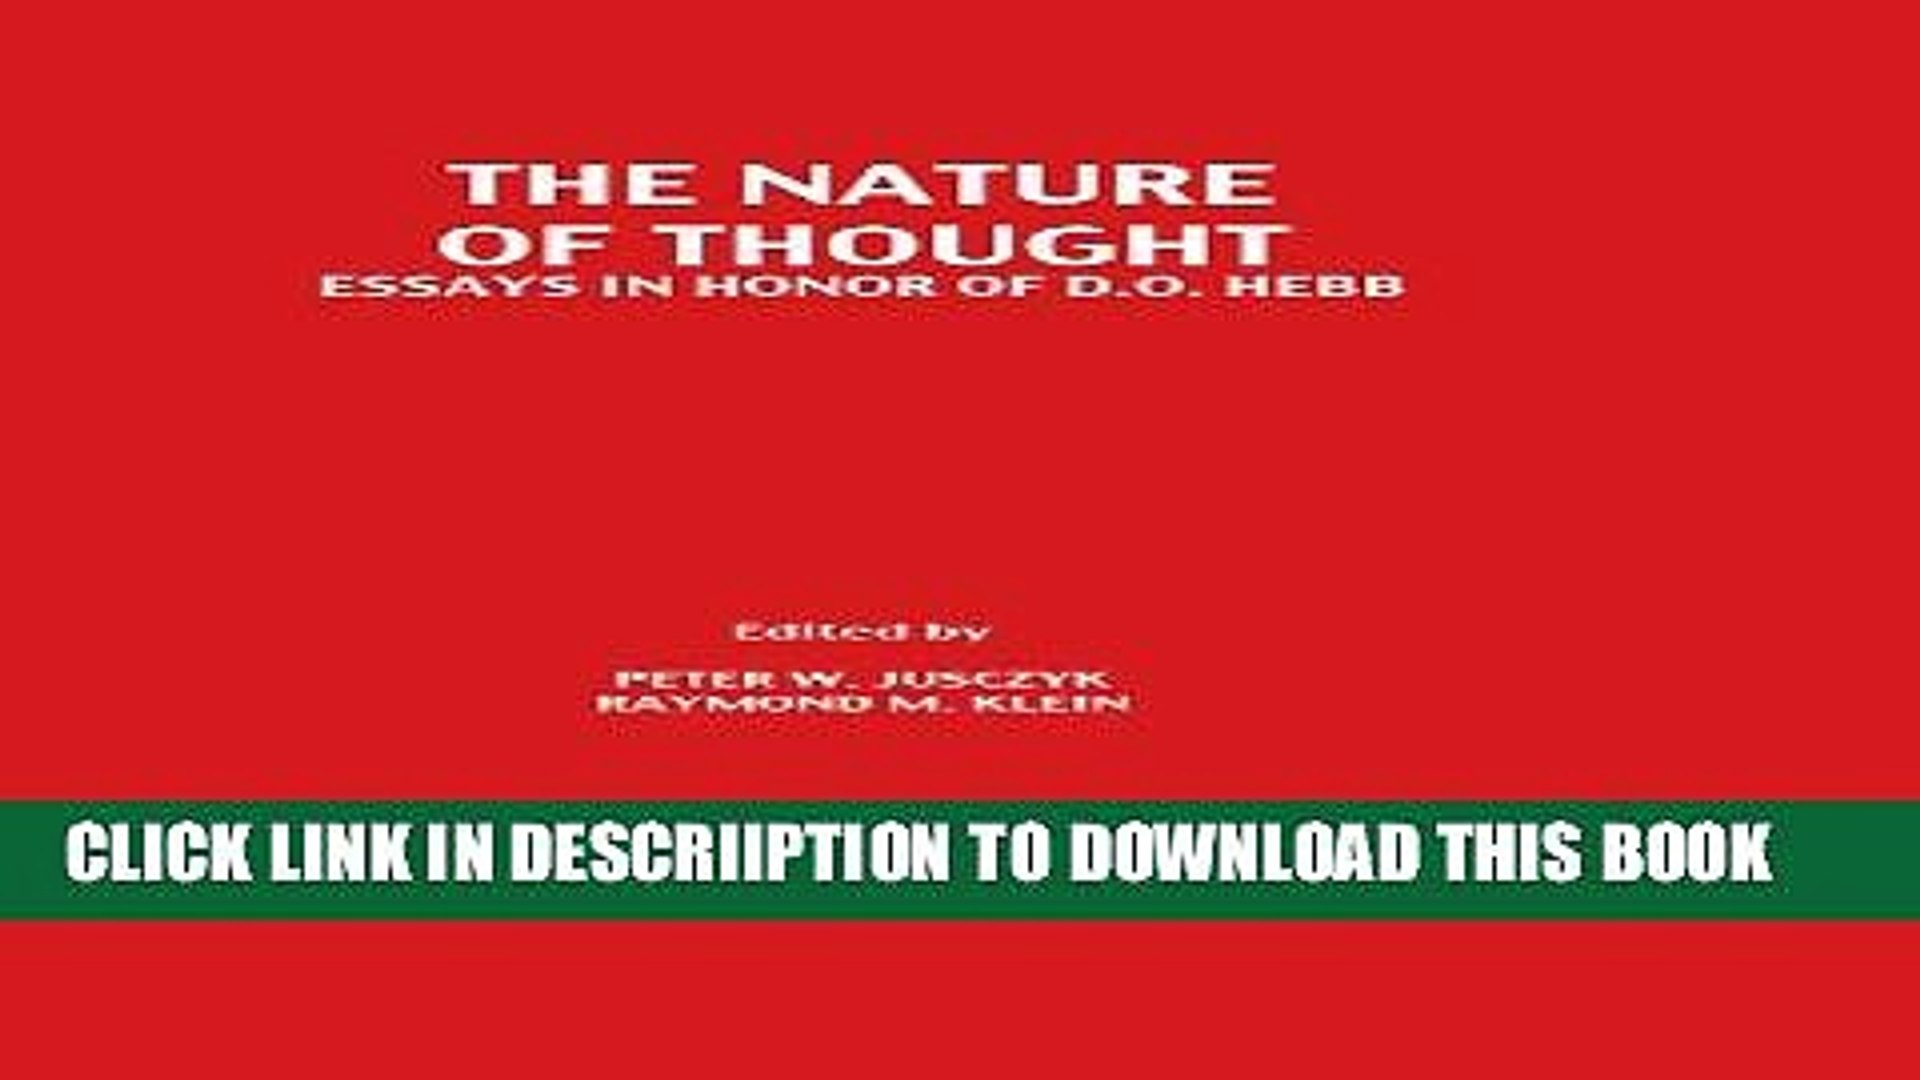 [PDF] The Nature of Thought: Essays in Honor of D.o. Hebb Full Colection